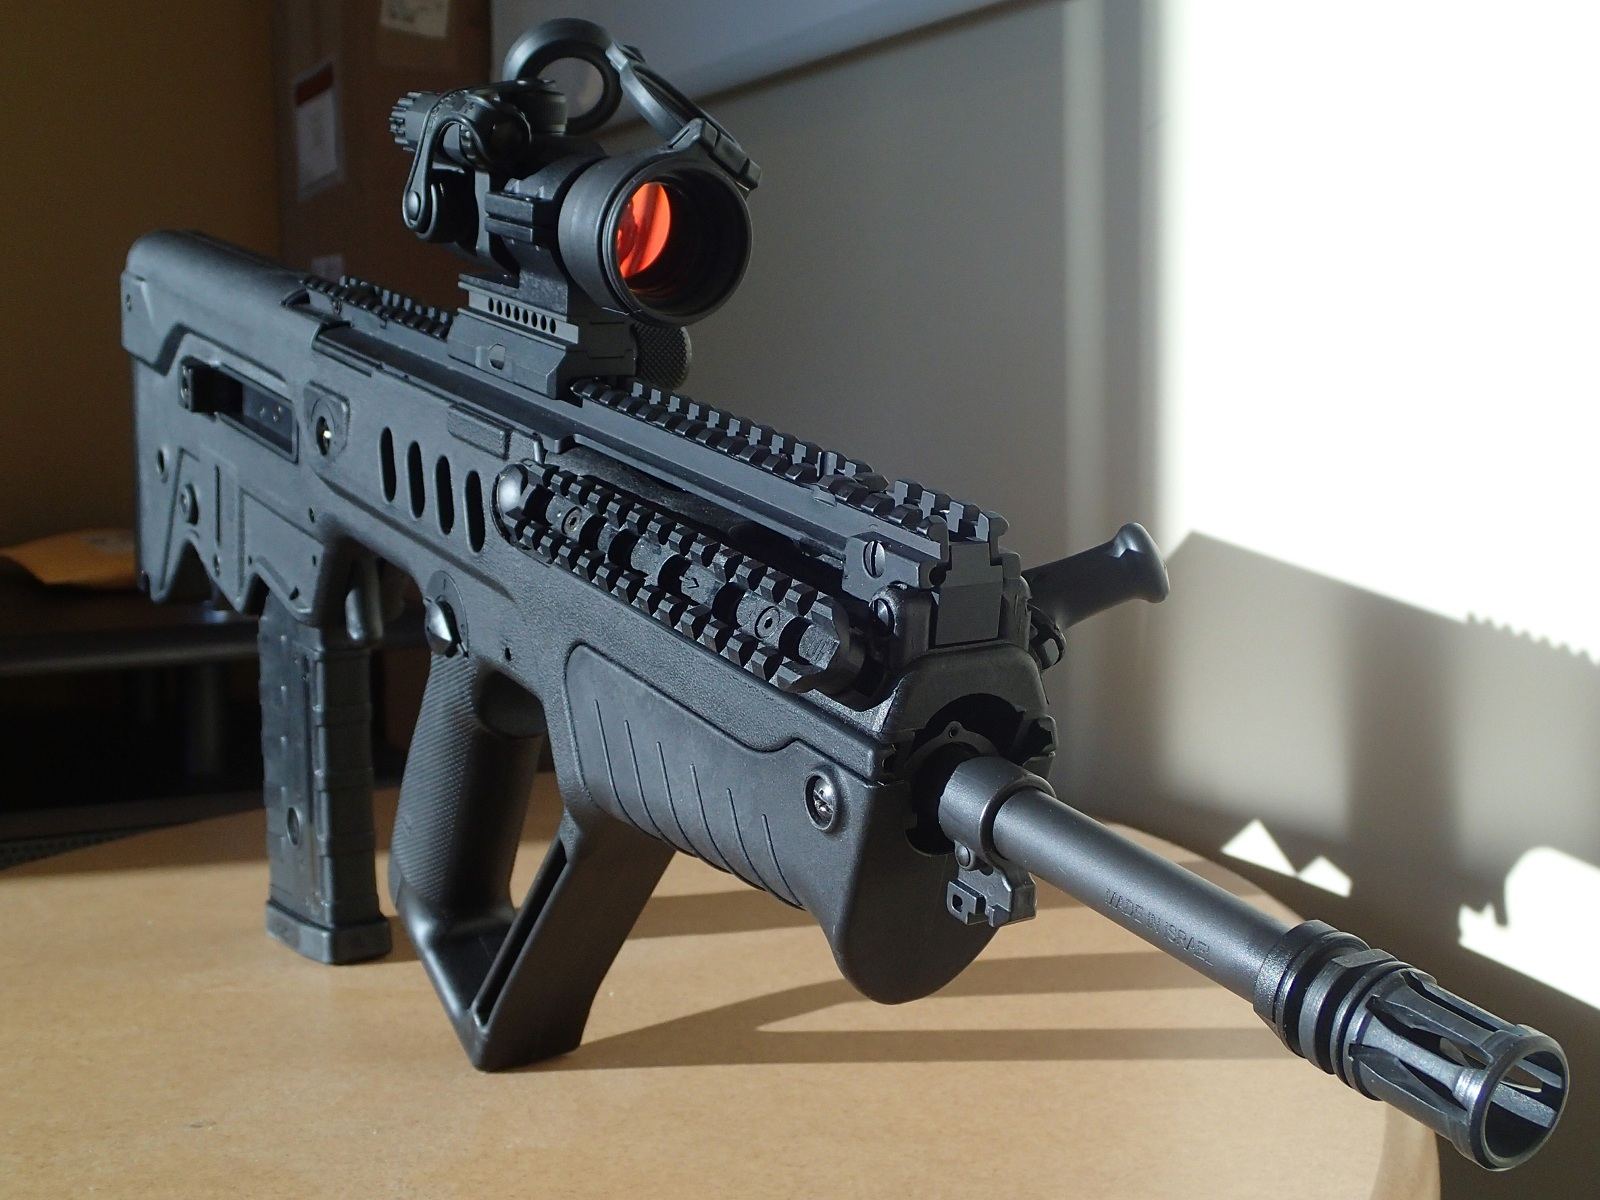 tavor pro sar dot aimpoint rifle sight iwi quick mounted target assault shot author powerful outdoorhub facilitated acquisition tight very